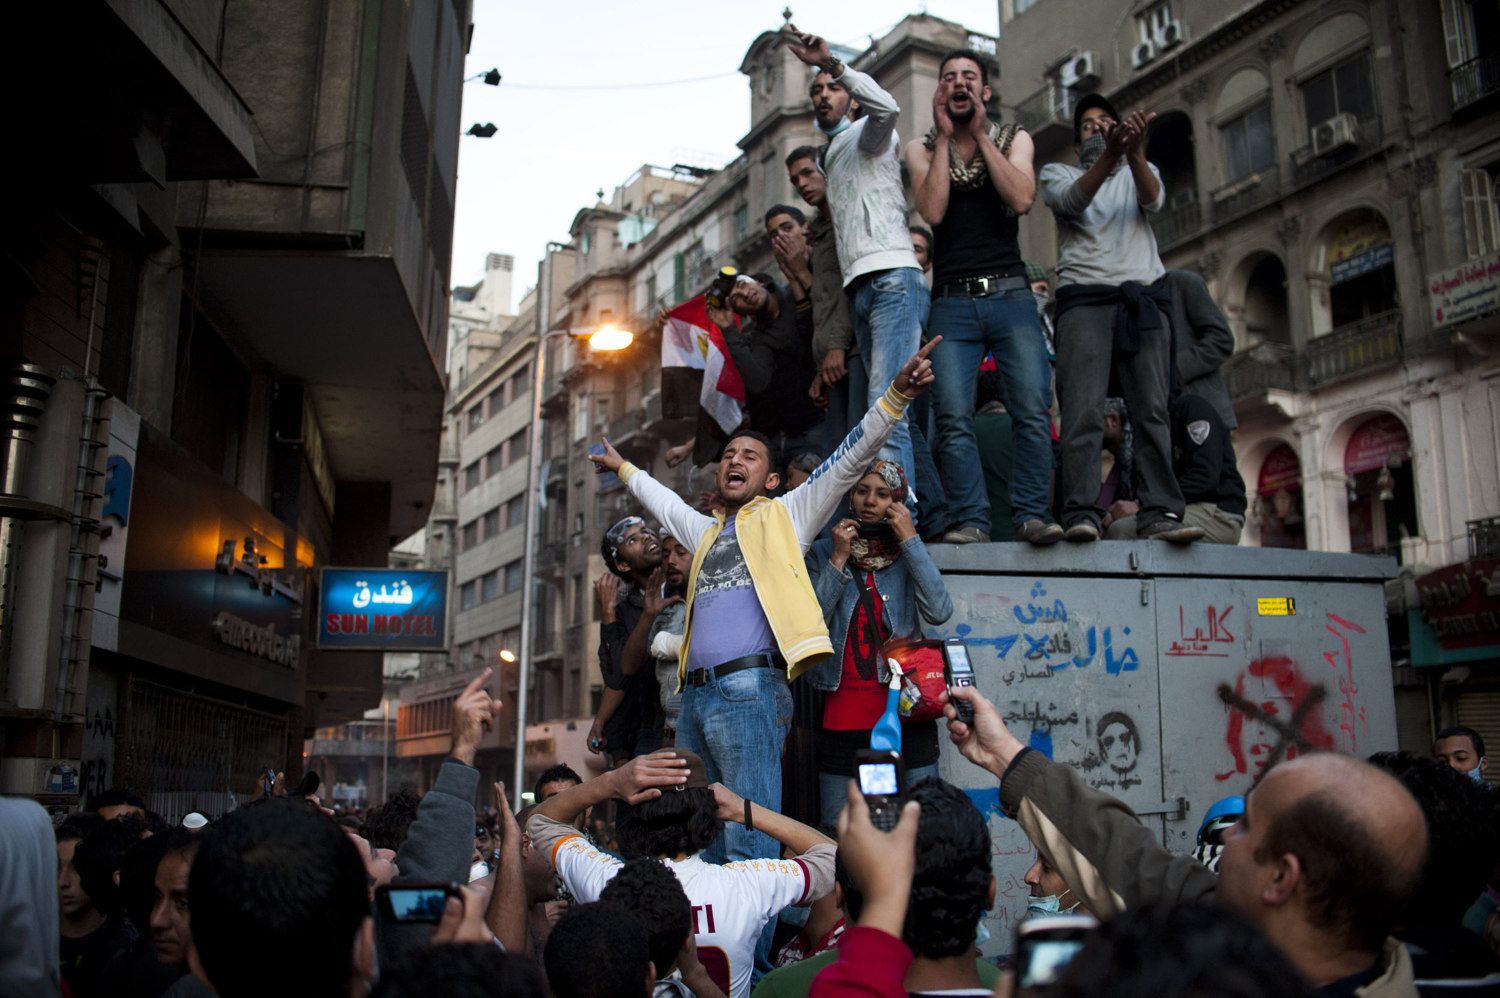 A group of youth's stand and sing revolutionary songs to onlookers on November 22nd 2011.